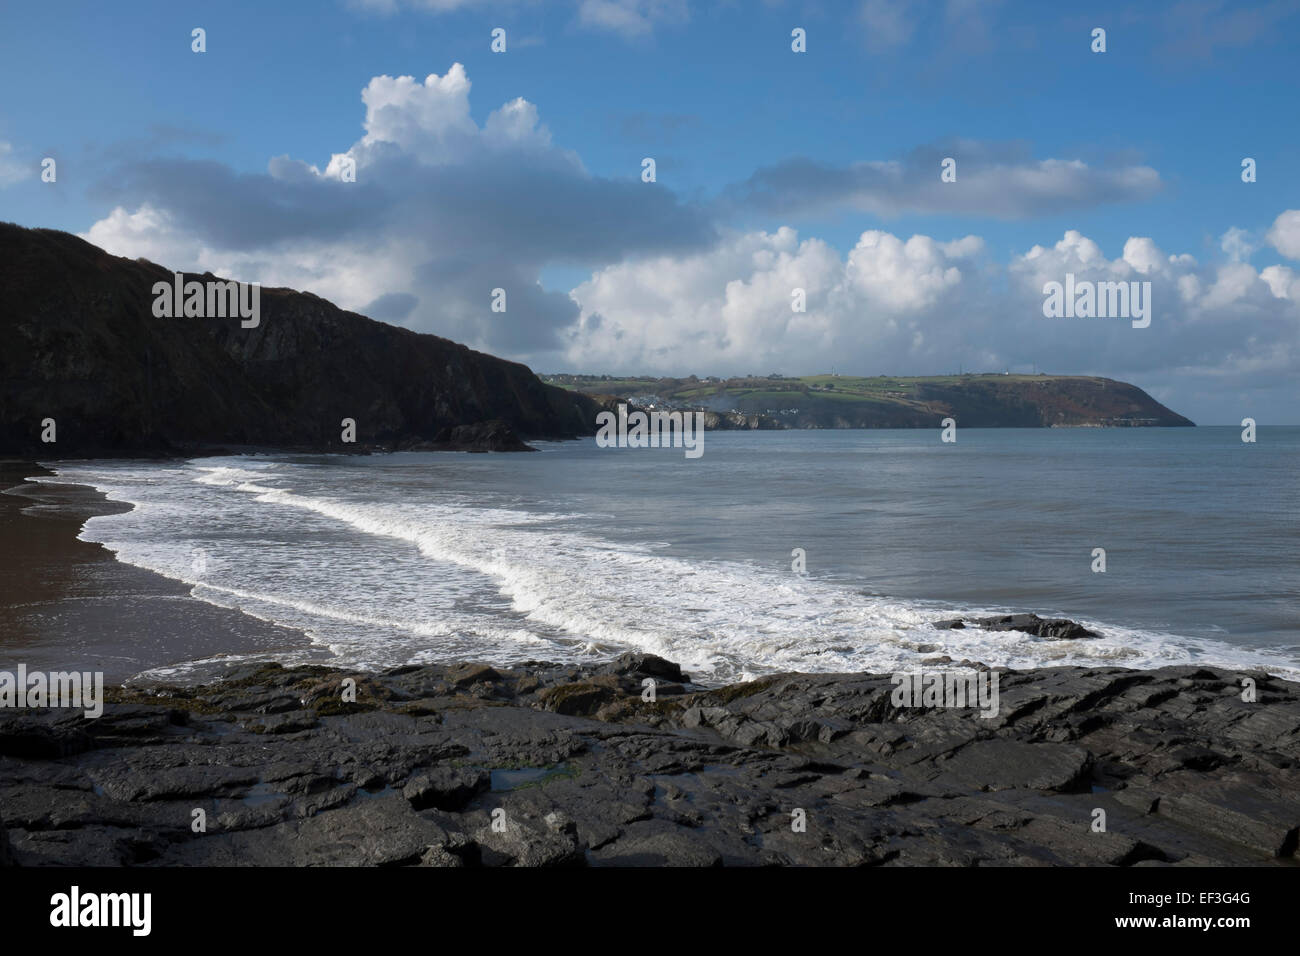 The beach in the village of Tresaith, Ceredigion. Tresaith lies between Aberporth and Llangranog in west Wales, - Stock Image